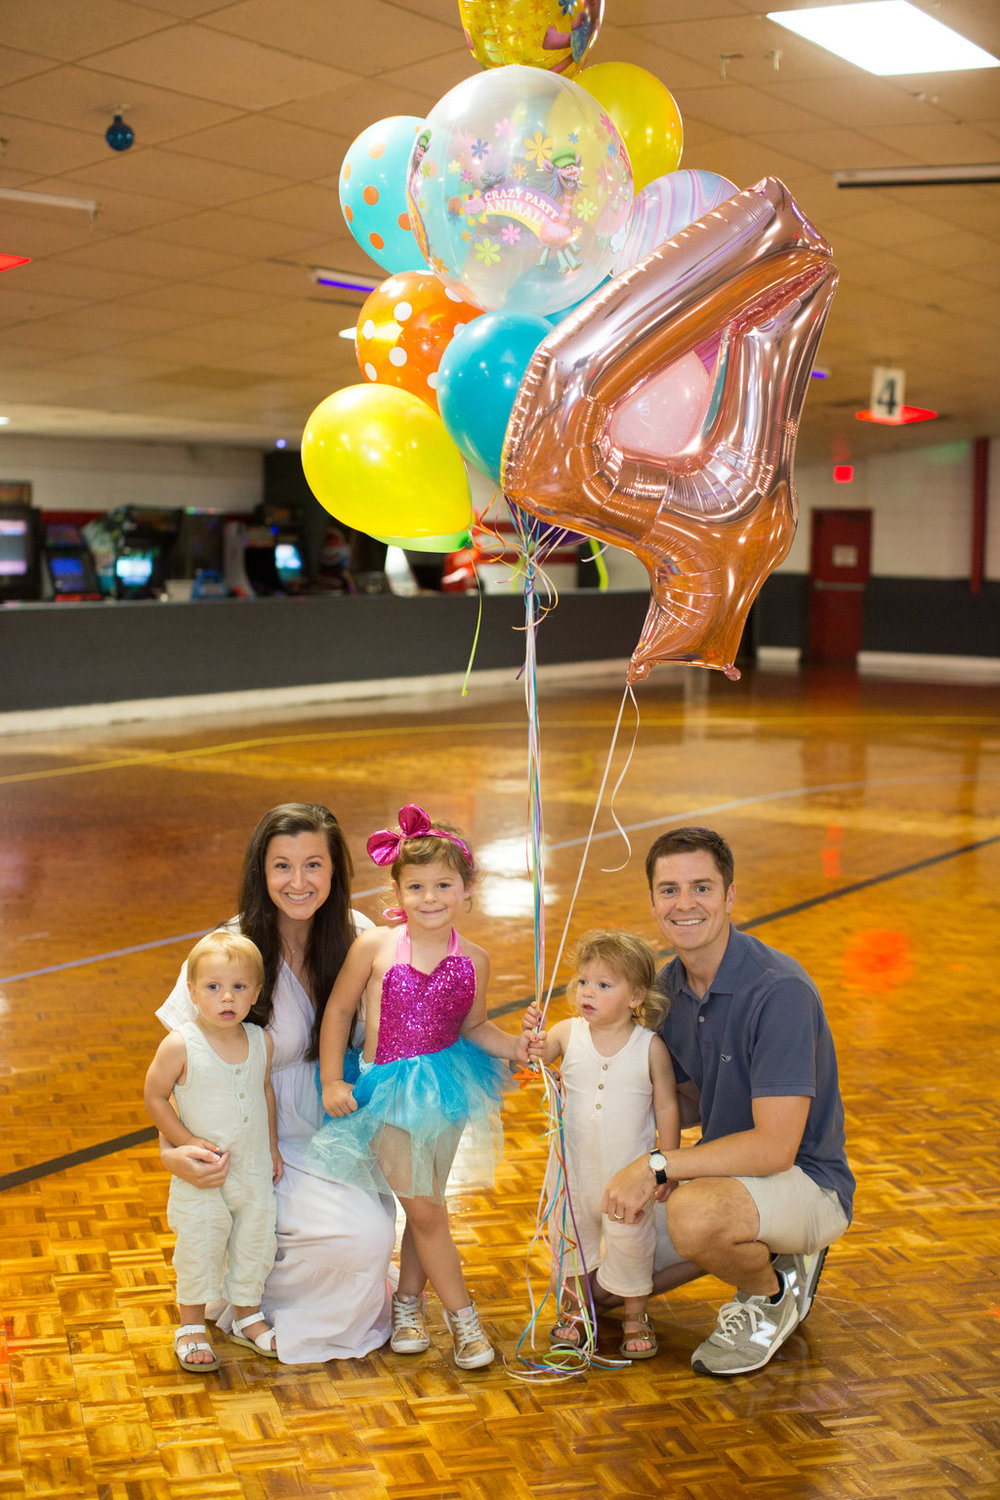 Jessica Zimmerman | Personal Blog | Child Birthday Party